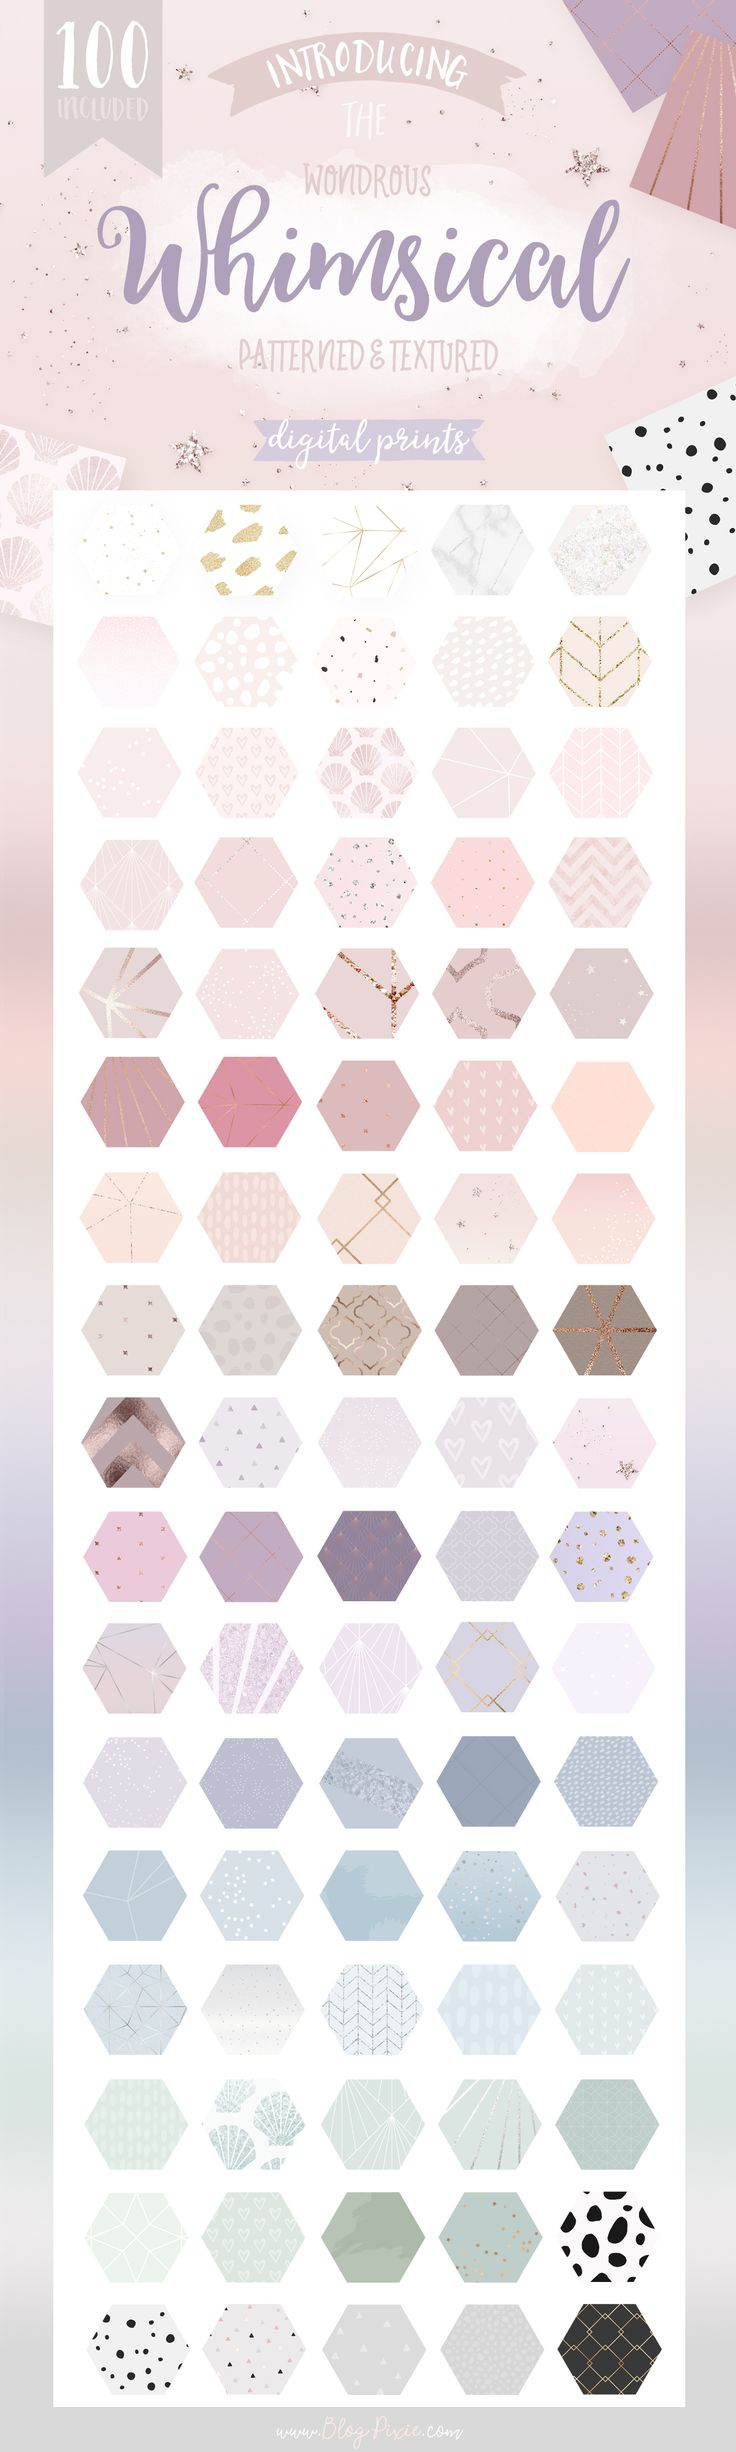 Whimsical patterns for branding and design by Blog Pixie. A pretty, feminine collection of patterned prints with glitter and metallic foil textures. Use these patterns for branding, blogging or business. Perfect for backgrounds, typography, blog graphics and more. Find them now at Creative Market.